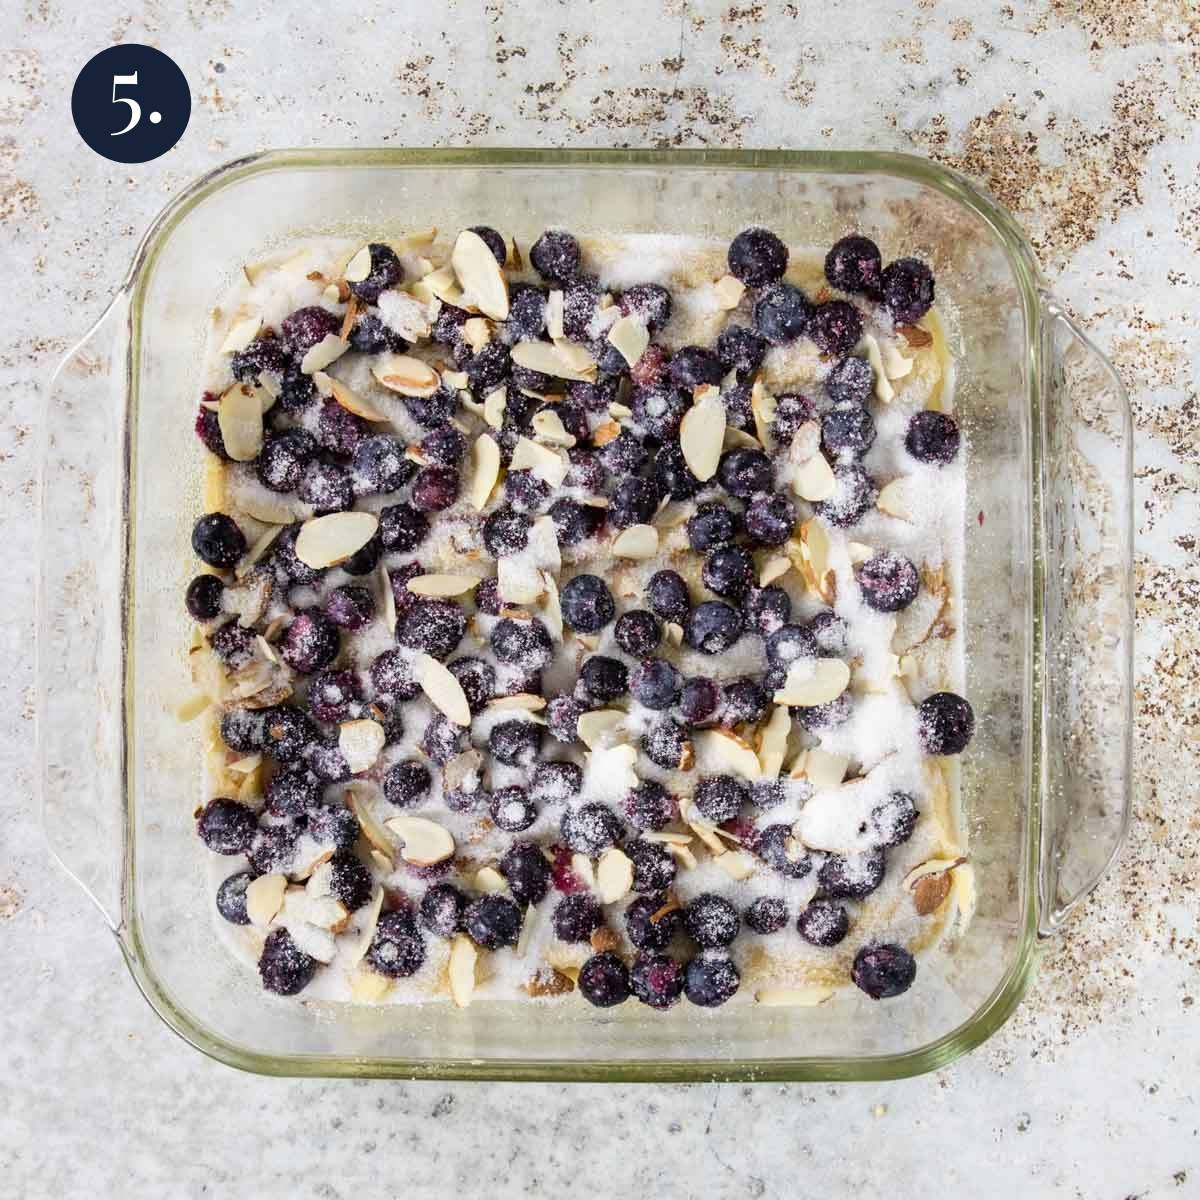 cake batter topped with blueberries, almonds and sugar